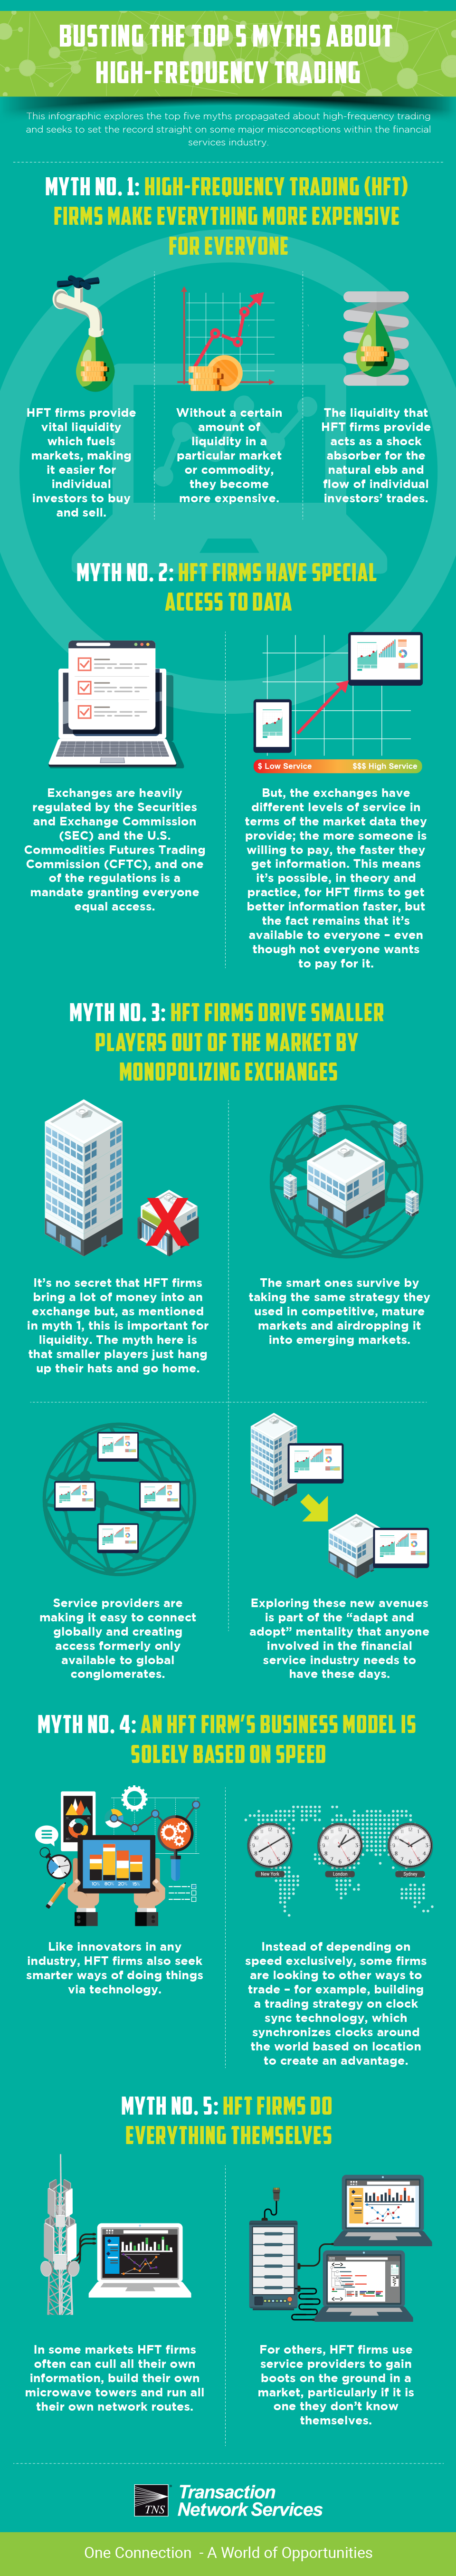 Busting The Top 5 Myths About High-Frequency Trading